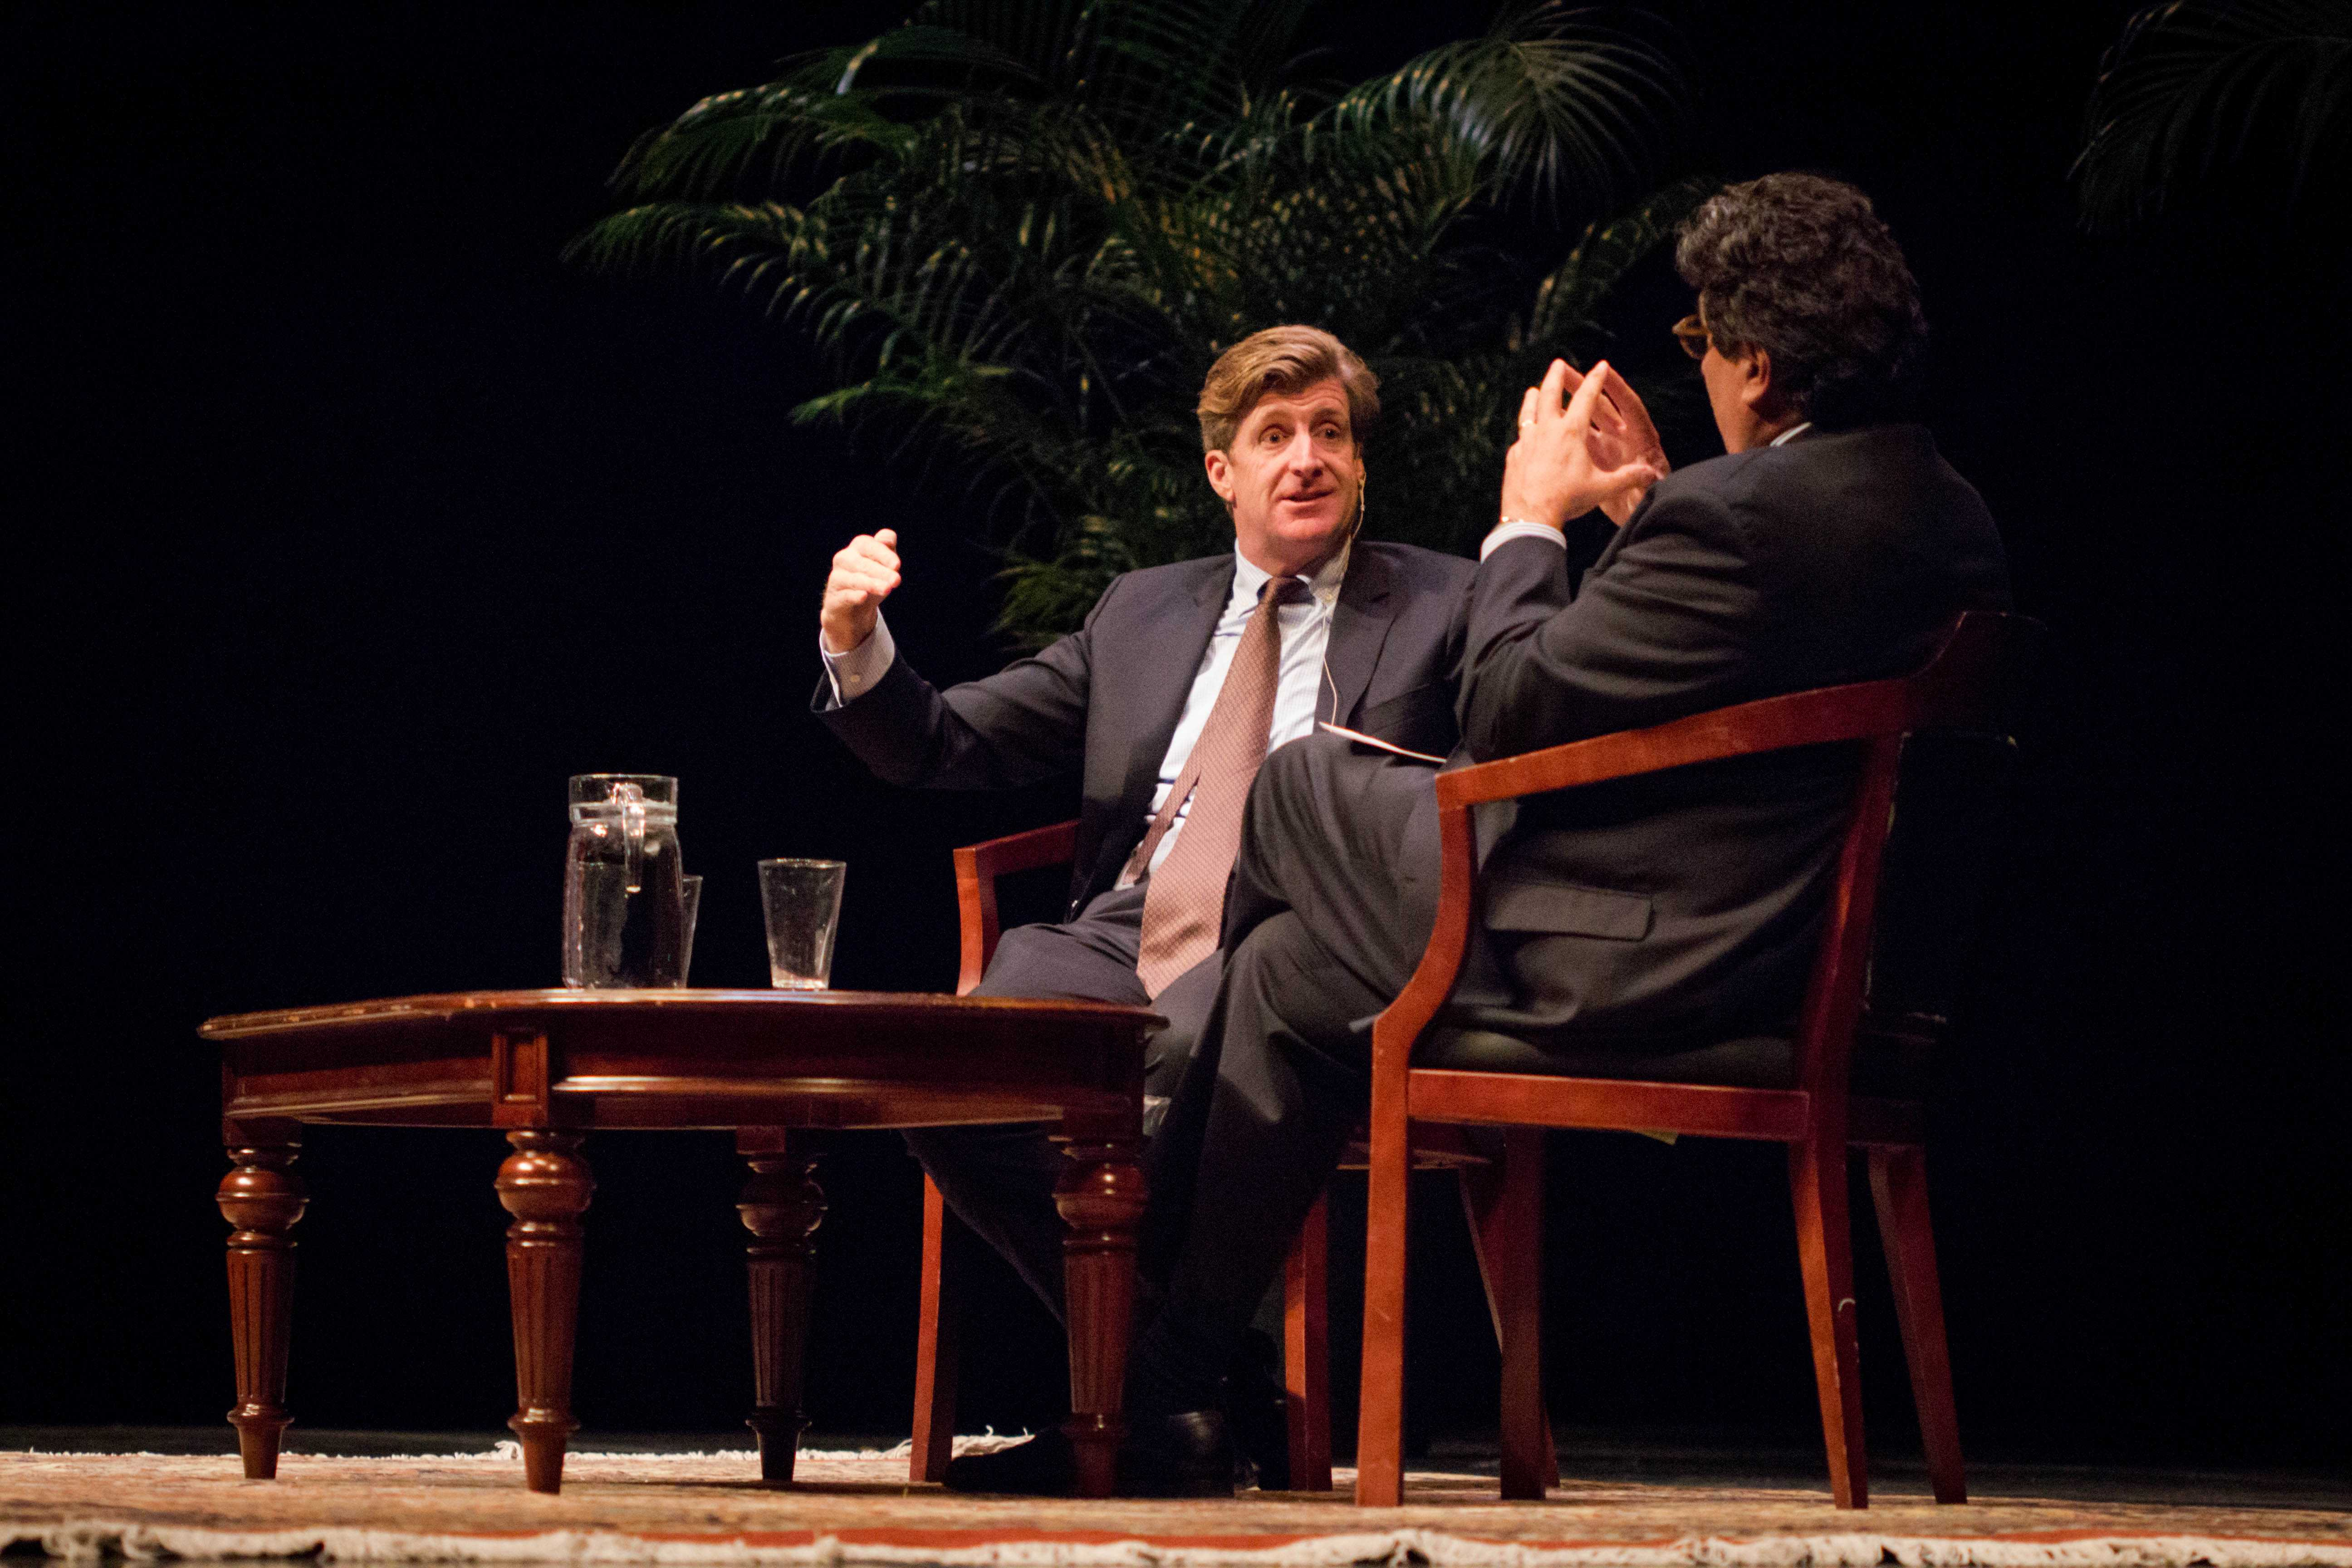 Q&A with Patrick J. Kennedy, former congressman and mental health advocate